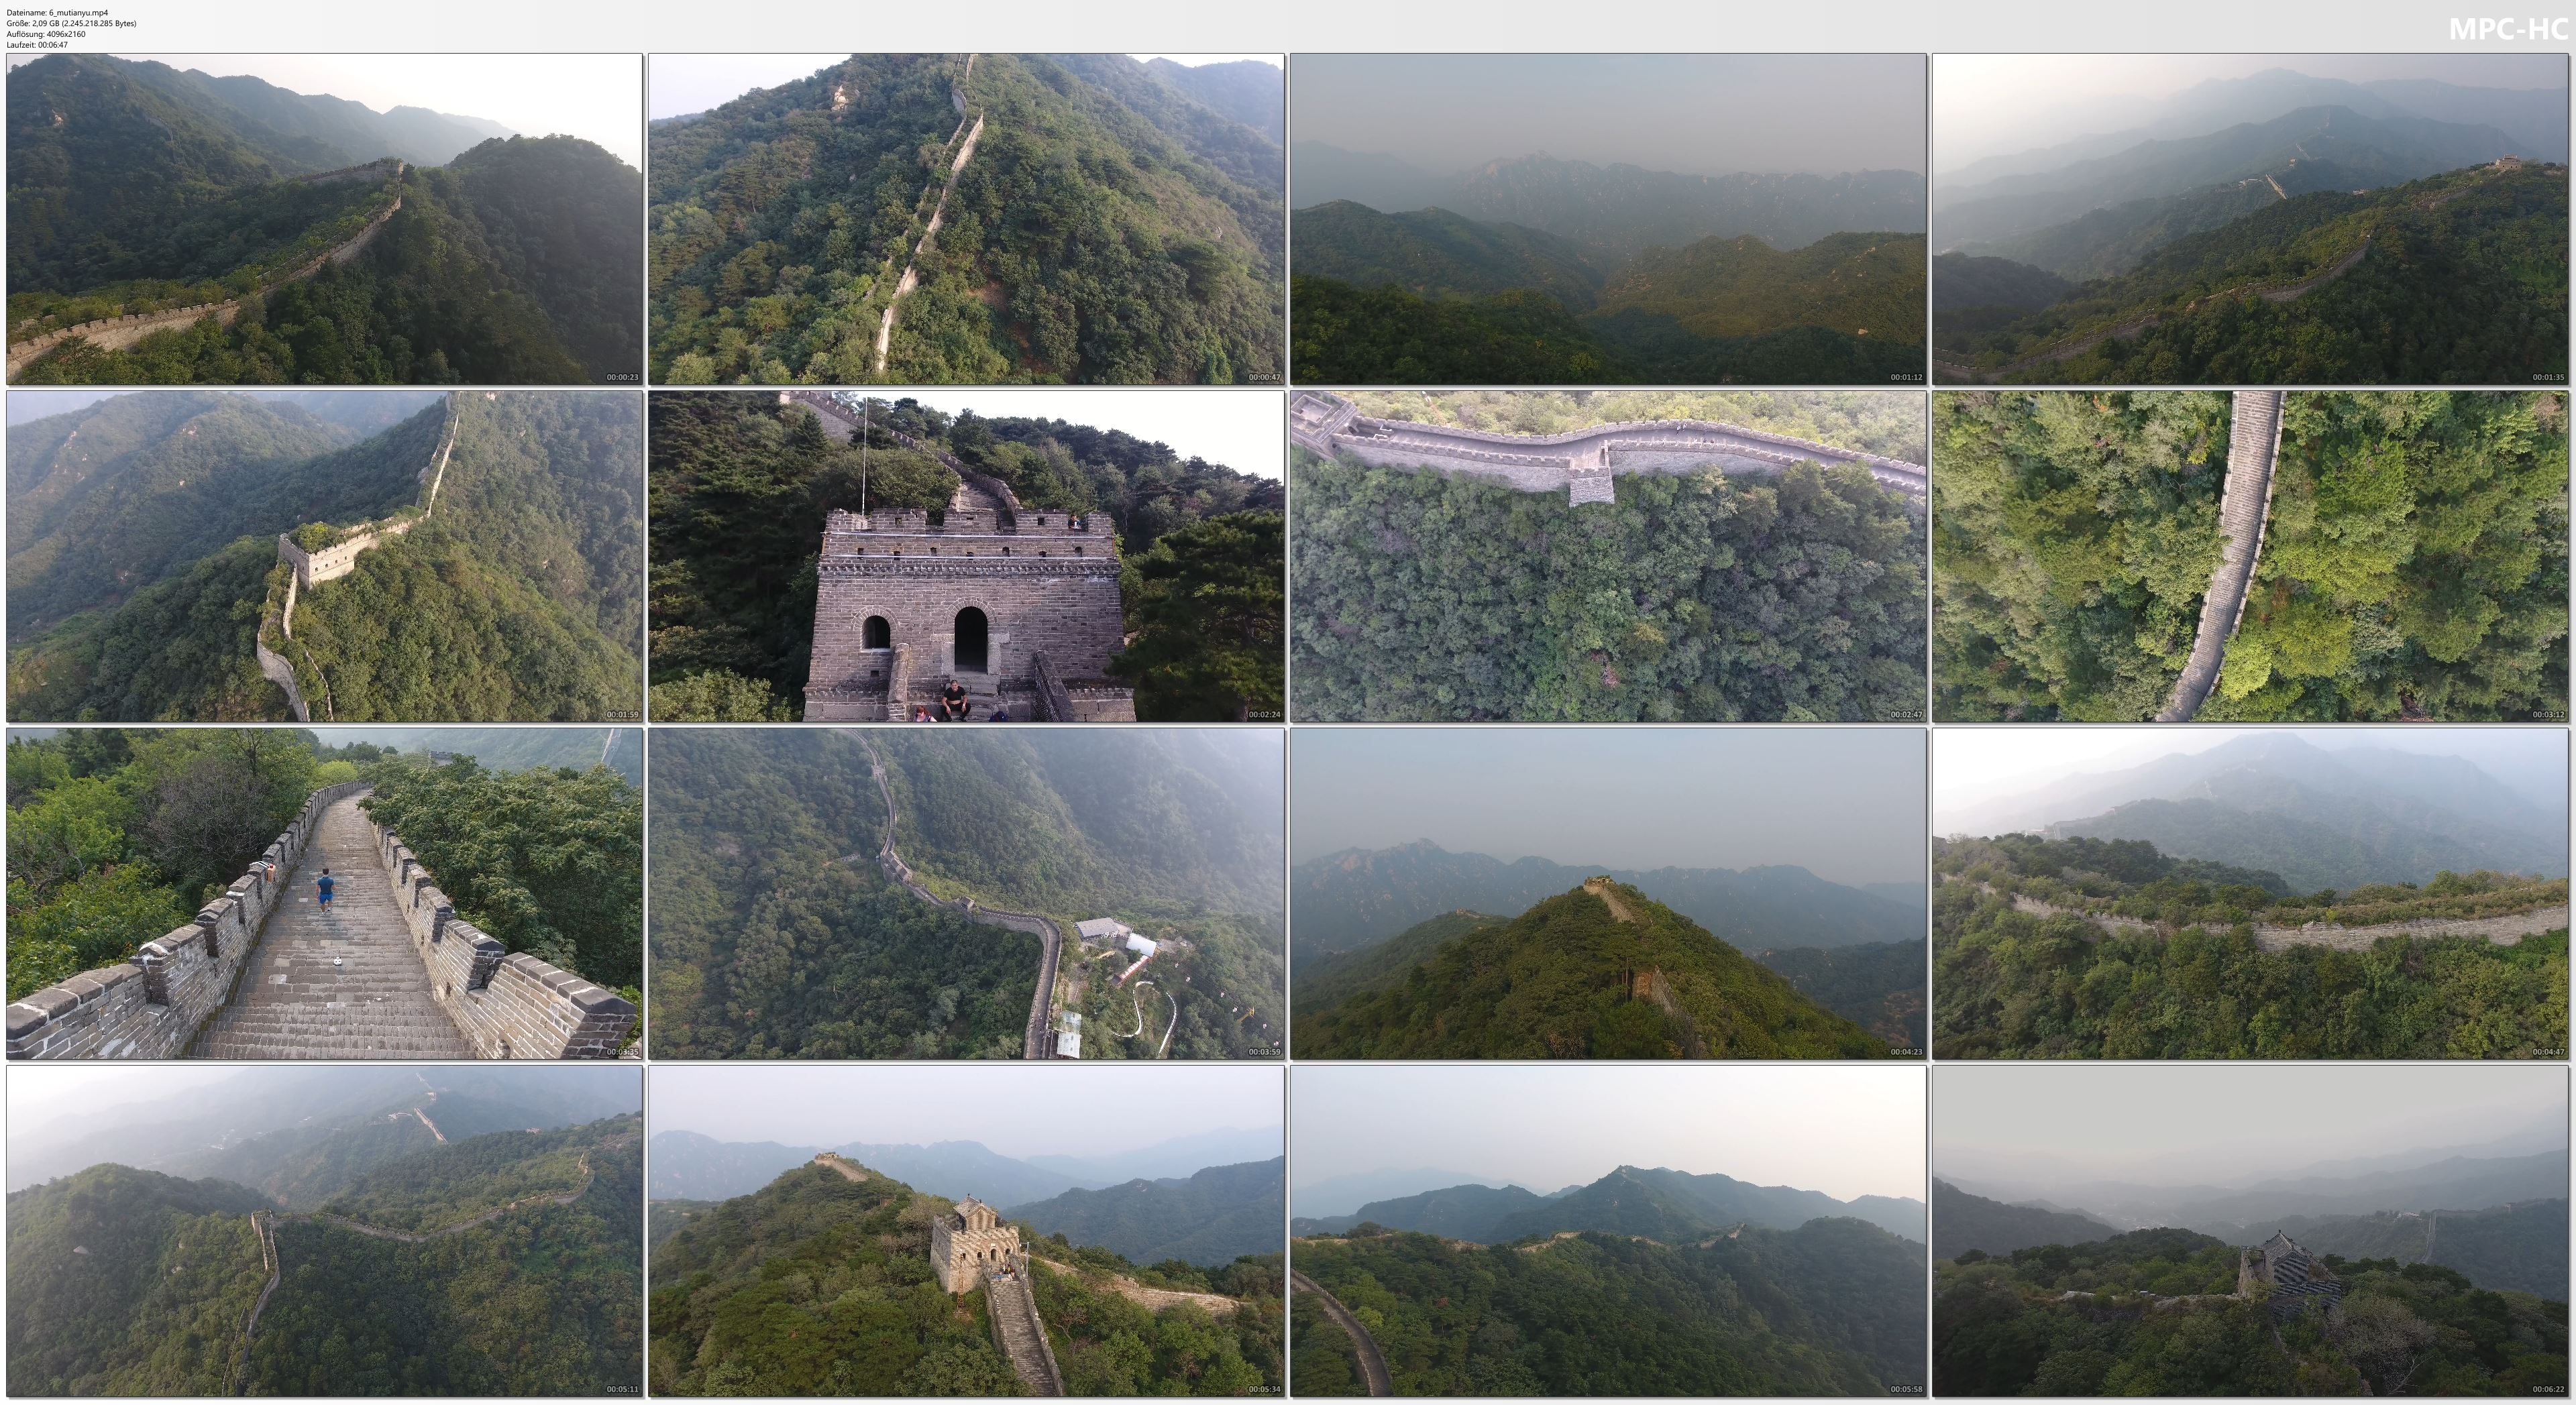 Drone Pictures from Video 4K Drone Footage GREAT WALL OF CHINA in Mutianyu [DJI Phantom 4]